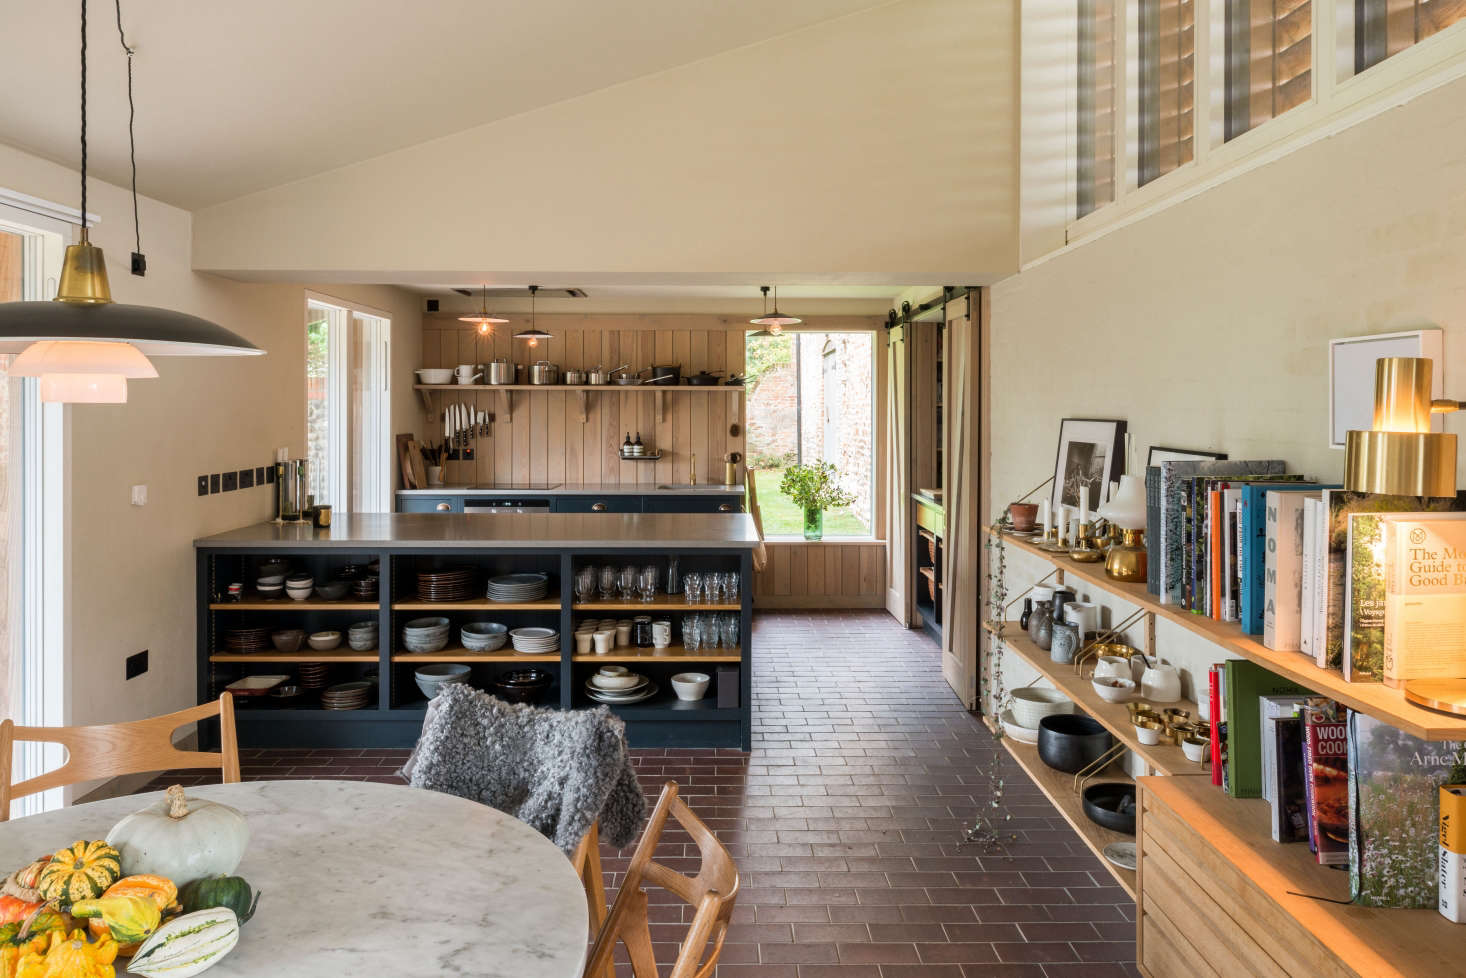 The house has doors on both sides, opening up the interiors to the garden and making it a good entertaining space.